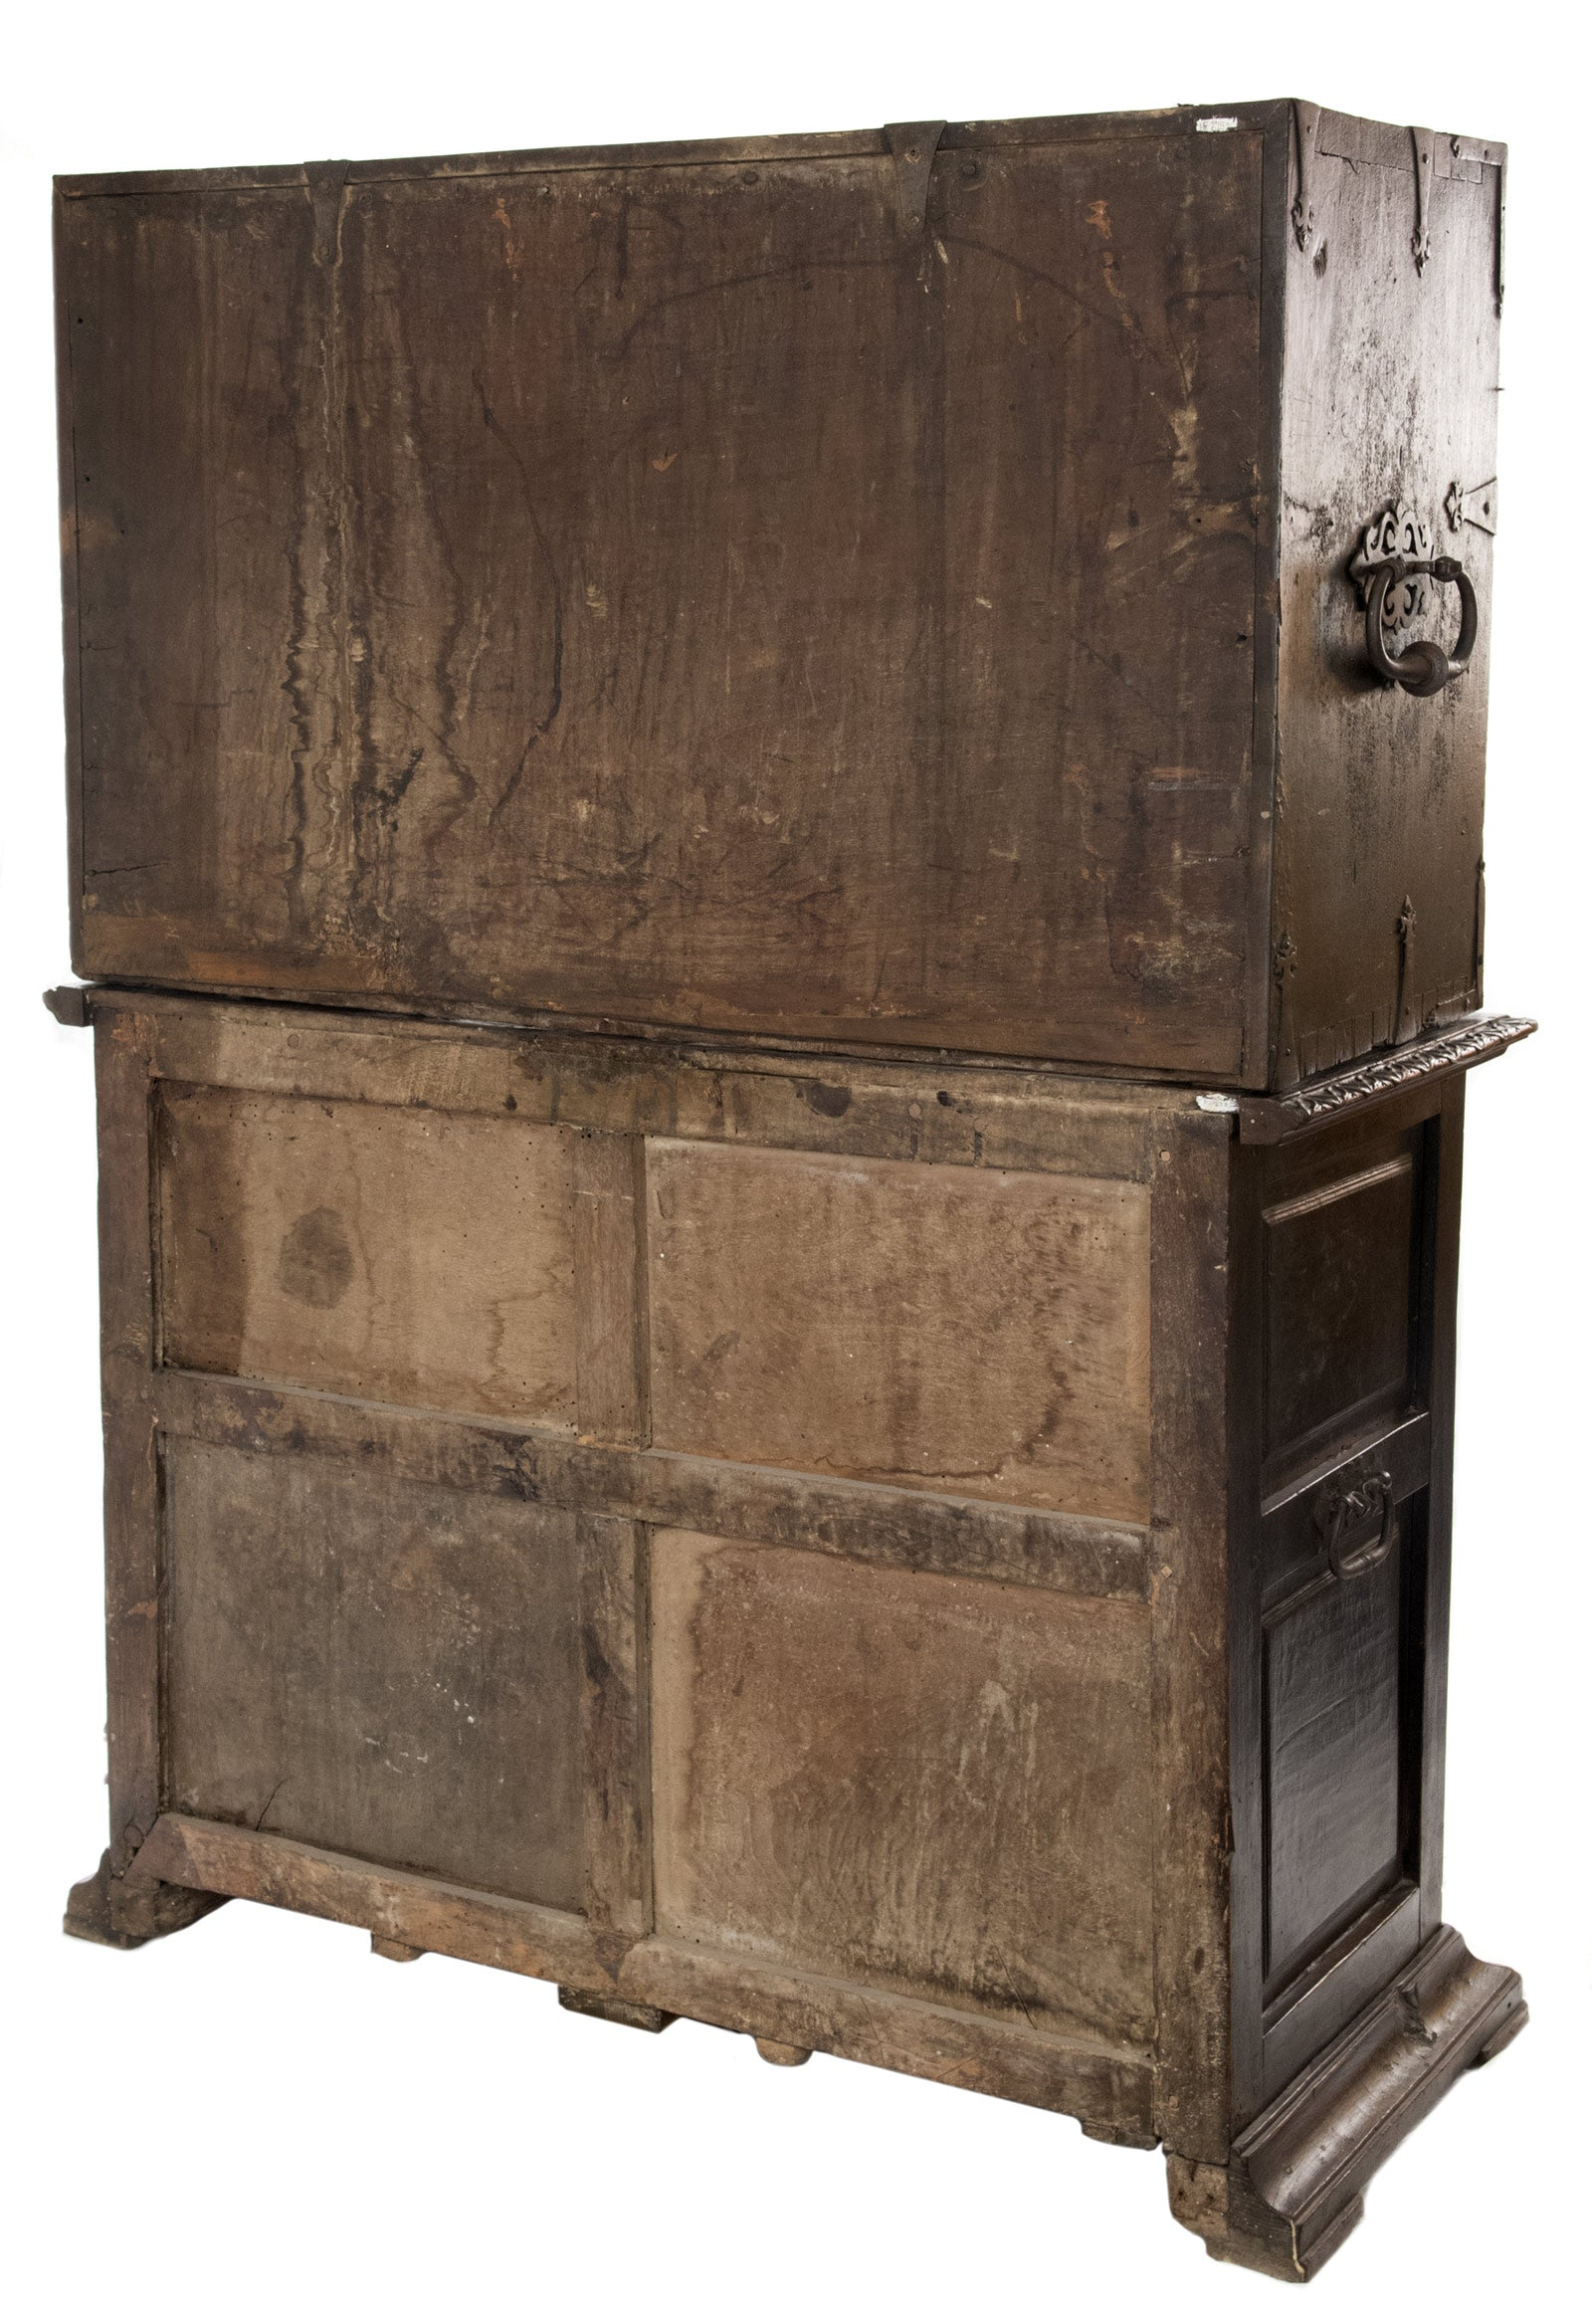 16th Century Spanish Vargue o Cabinet with Limoges Enamel Drawer Fronts